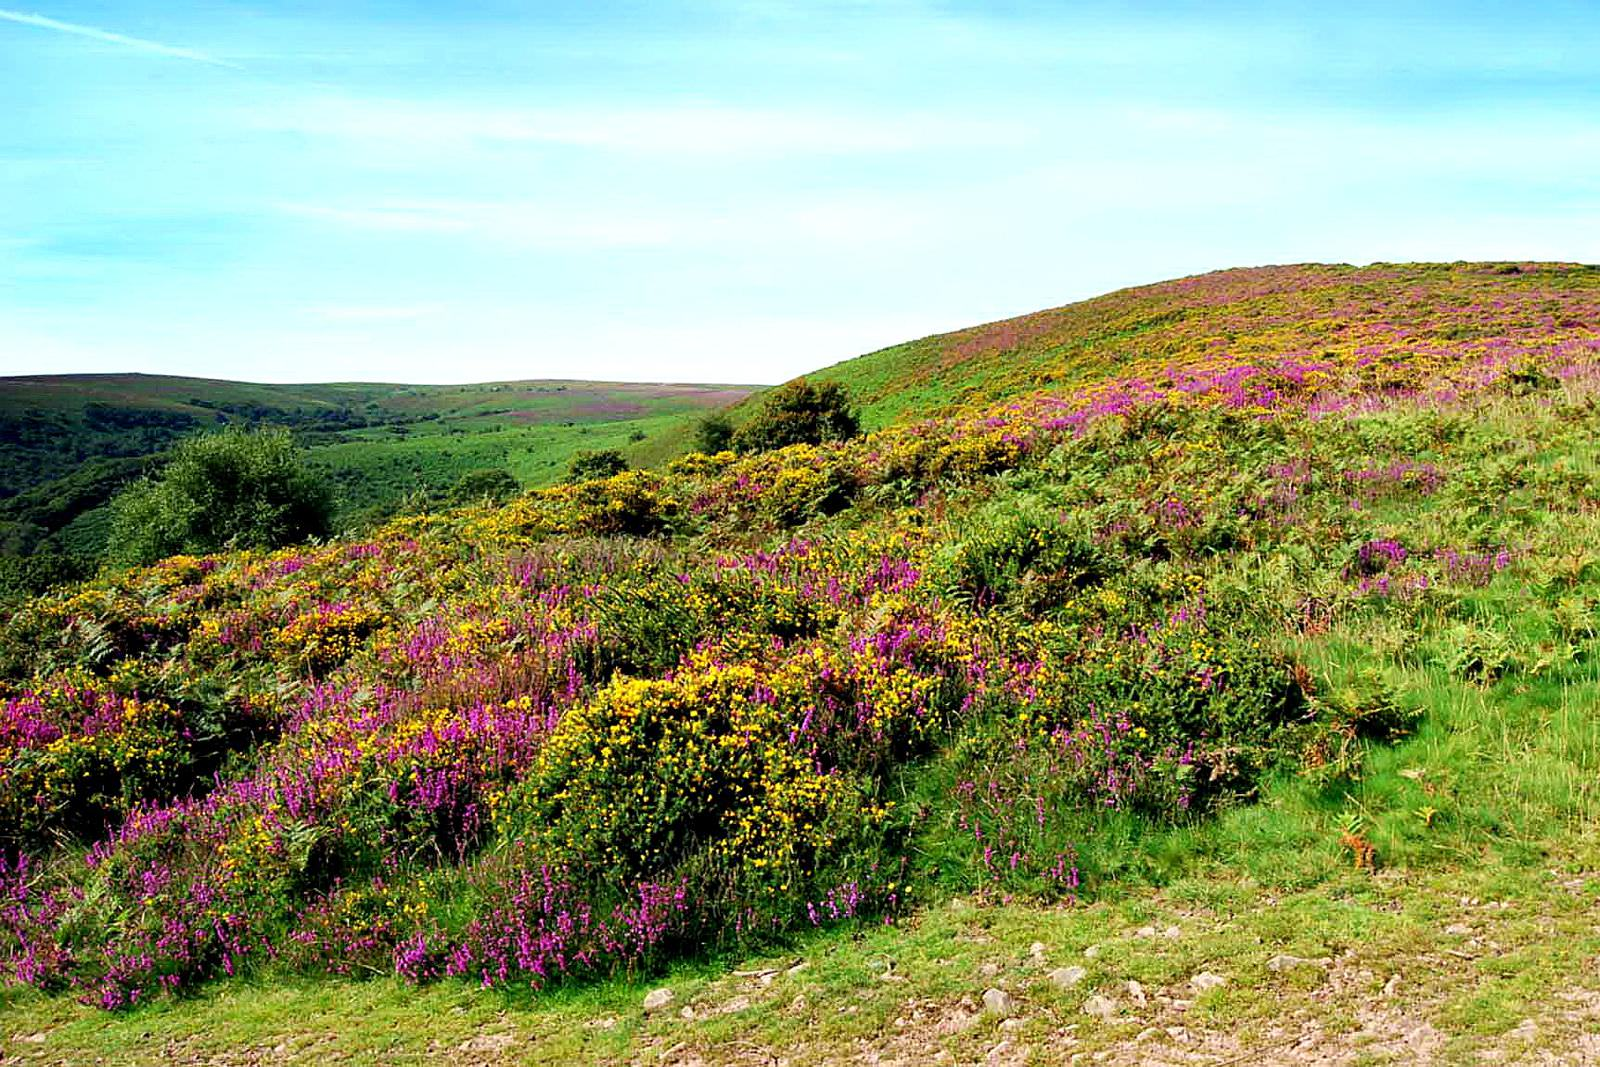 Heather growing on the Quantock hills